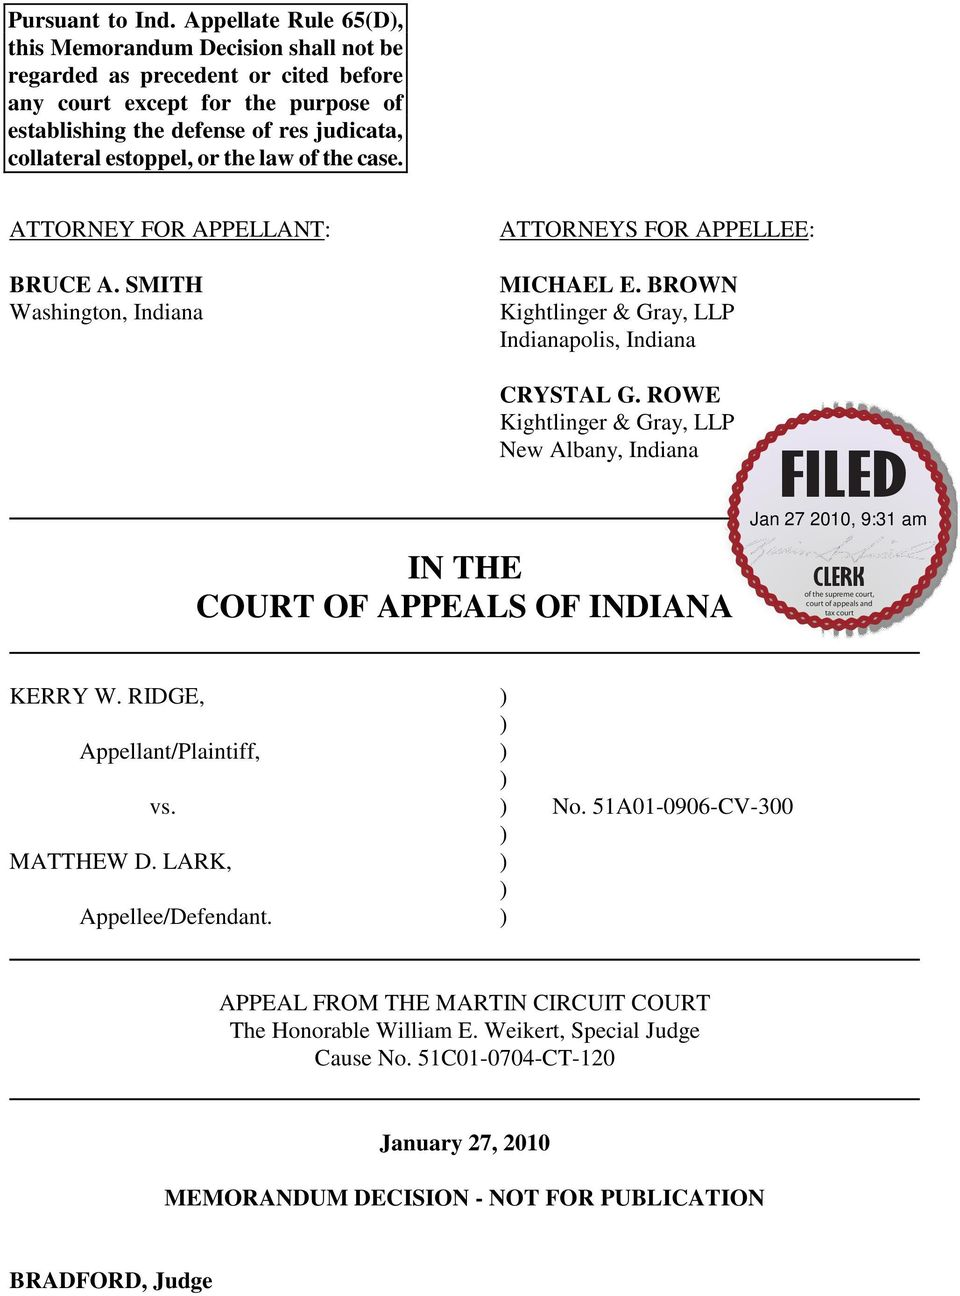 estoppel, or the law of the case. ATTORNEY FOR APPELLANT: BRUCE A. SMITH Washington, Indiana ATTORNEYS FOR APPELLEE: MICHAEL E. BROWN Kightlinger & Gray, LLP Indianapolis, Indiana CRYSTAL G.